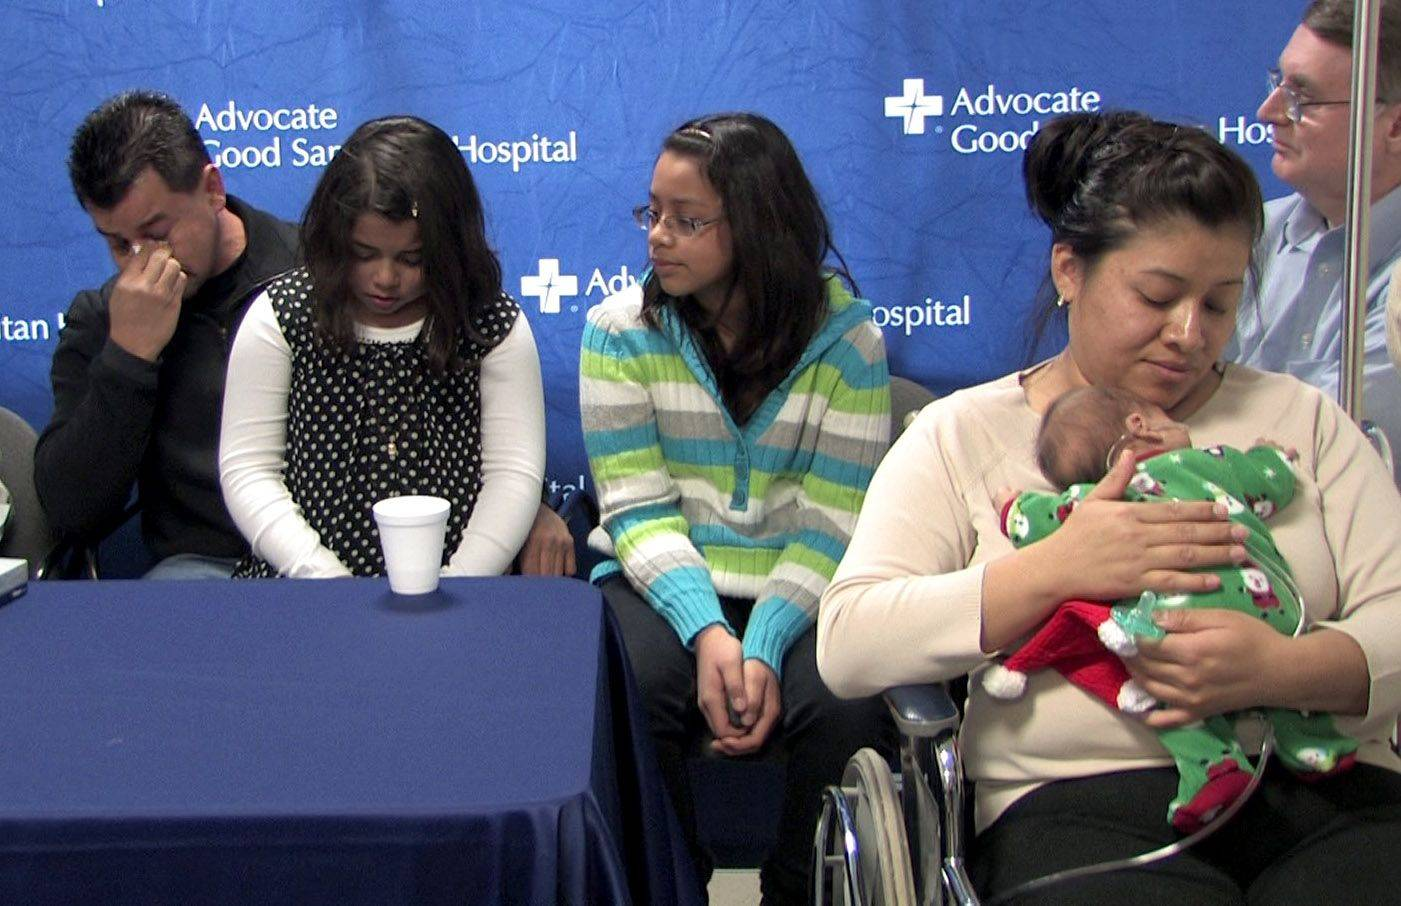 Martin Huerta, left, gets emotional while talking about the difficulties with the premature birth of his son Martin Huerta, Jr., right, on the lap of his mother Angelica Salas of Plainfield. They were able to bring the baby home in time for Christmas. He was born threee months premature at Advocate Good Samaritan Hospital in Downers Grove. In the center are sisters Brenda, 9 and Jasmine, 10, right.